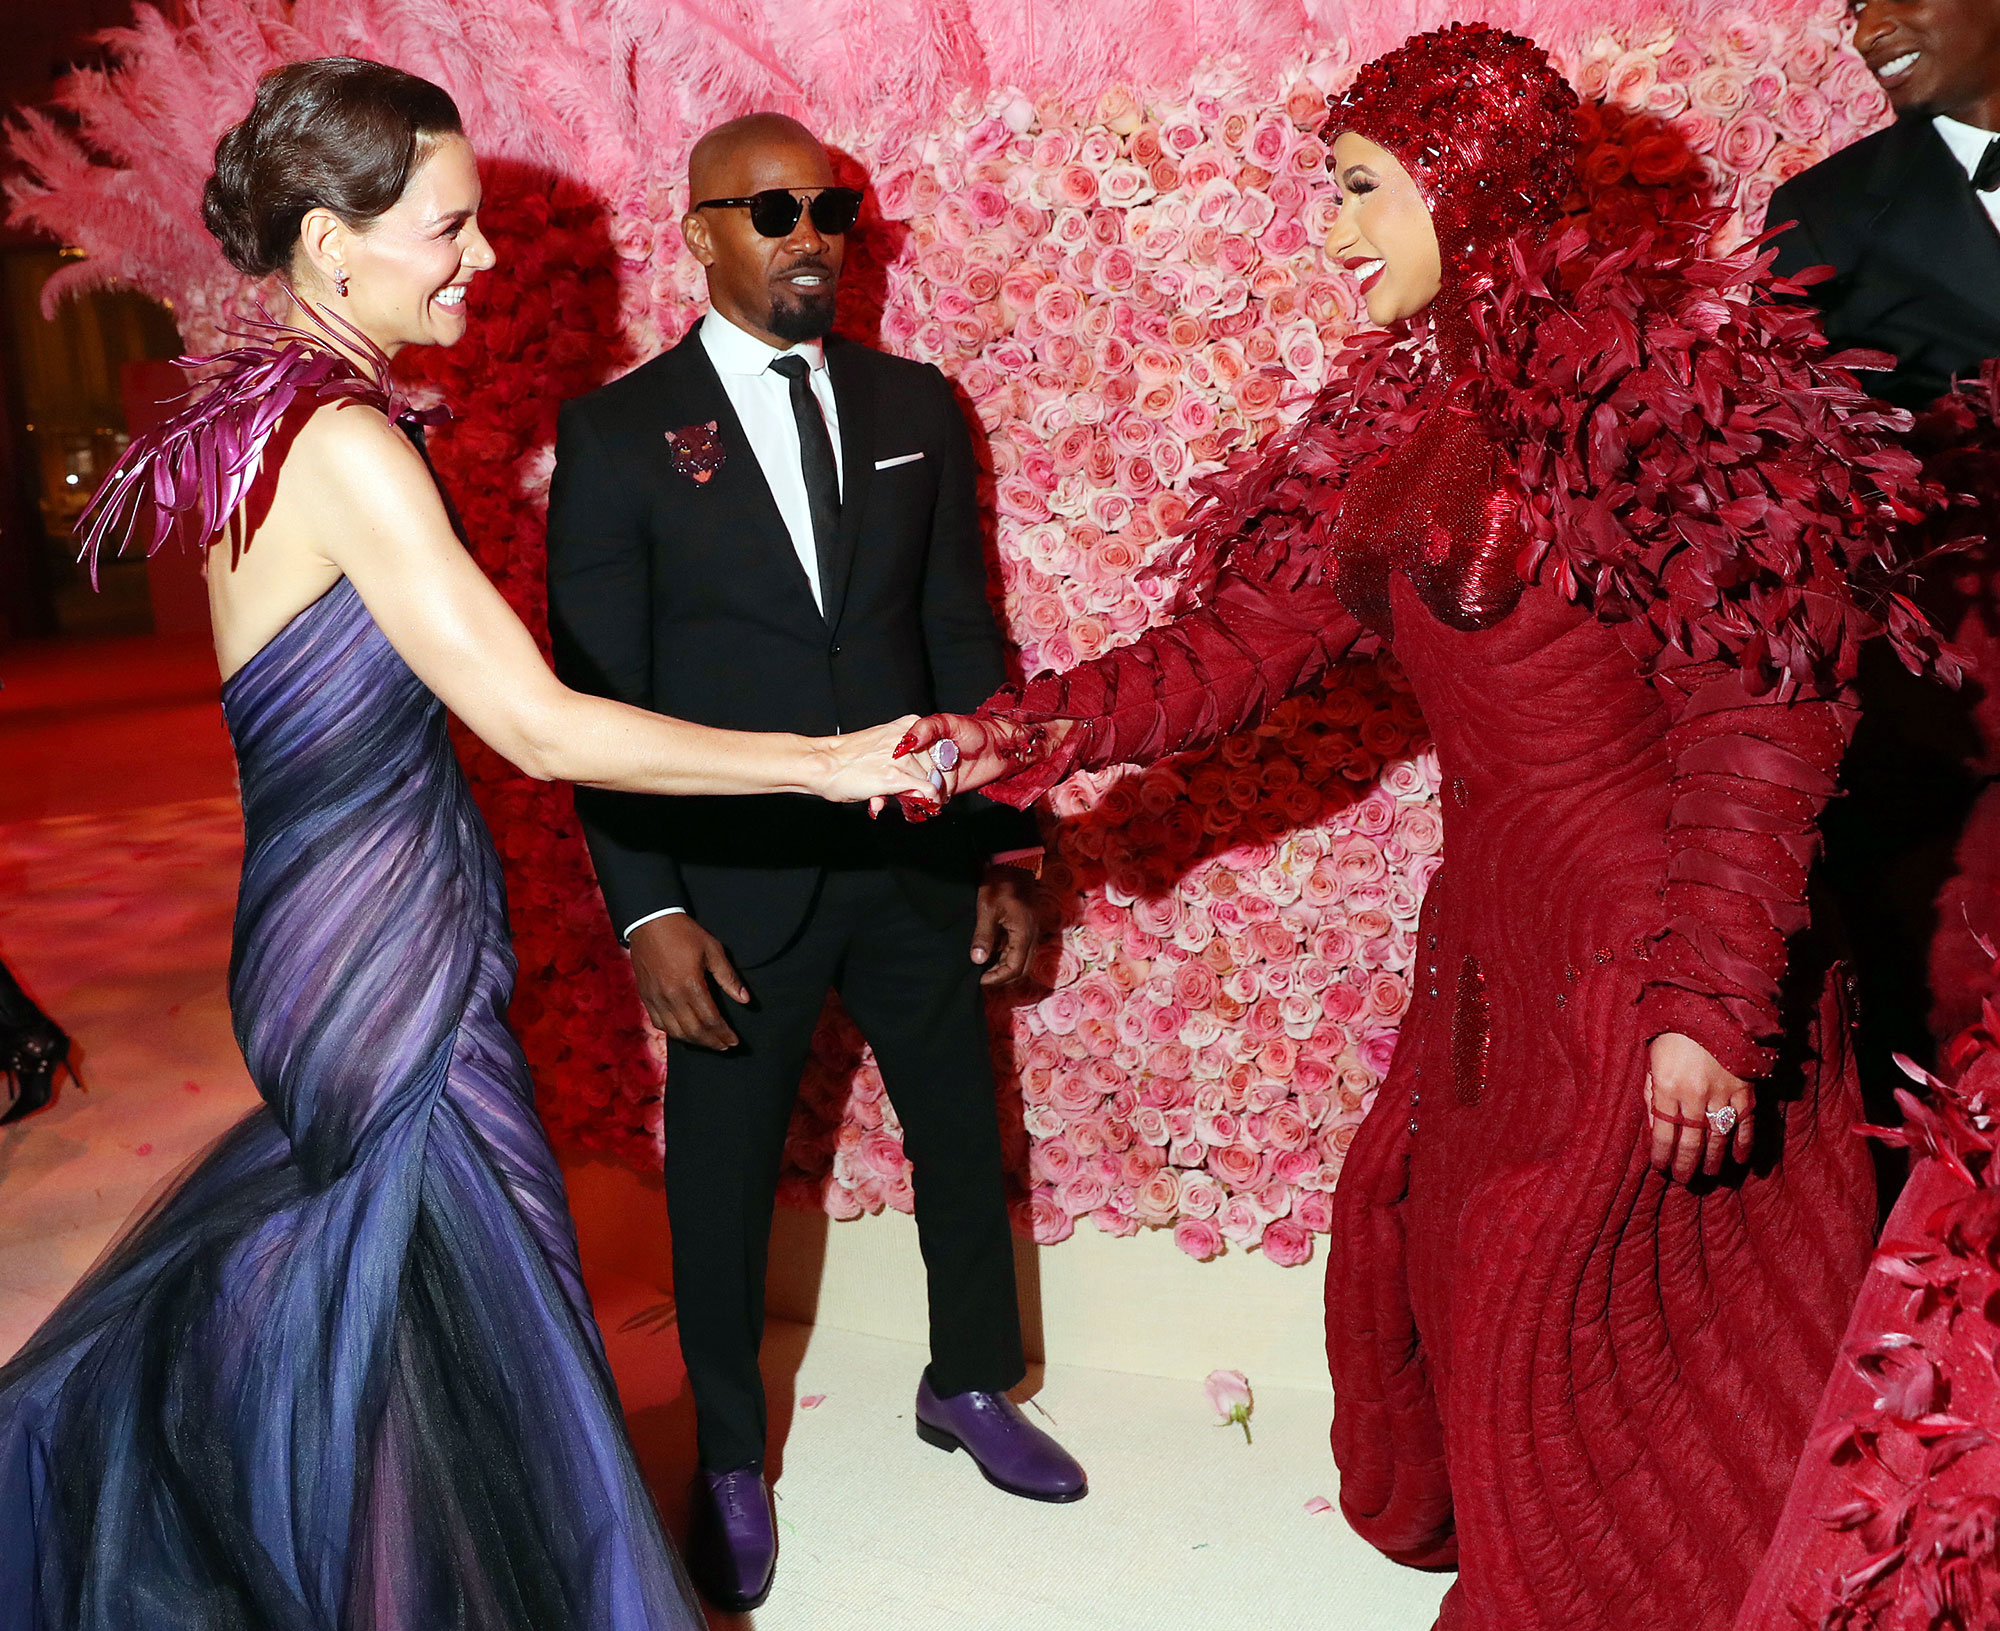 Met Gala 2019 What You Didnt See Katie Holmes Jamie Foxx Cardi B - Longtime loves Katie Holmes and Jamie Foxx had a moment with Cardi B.